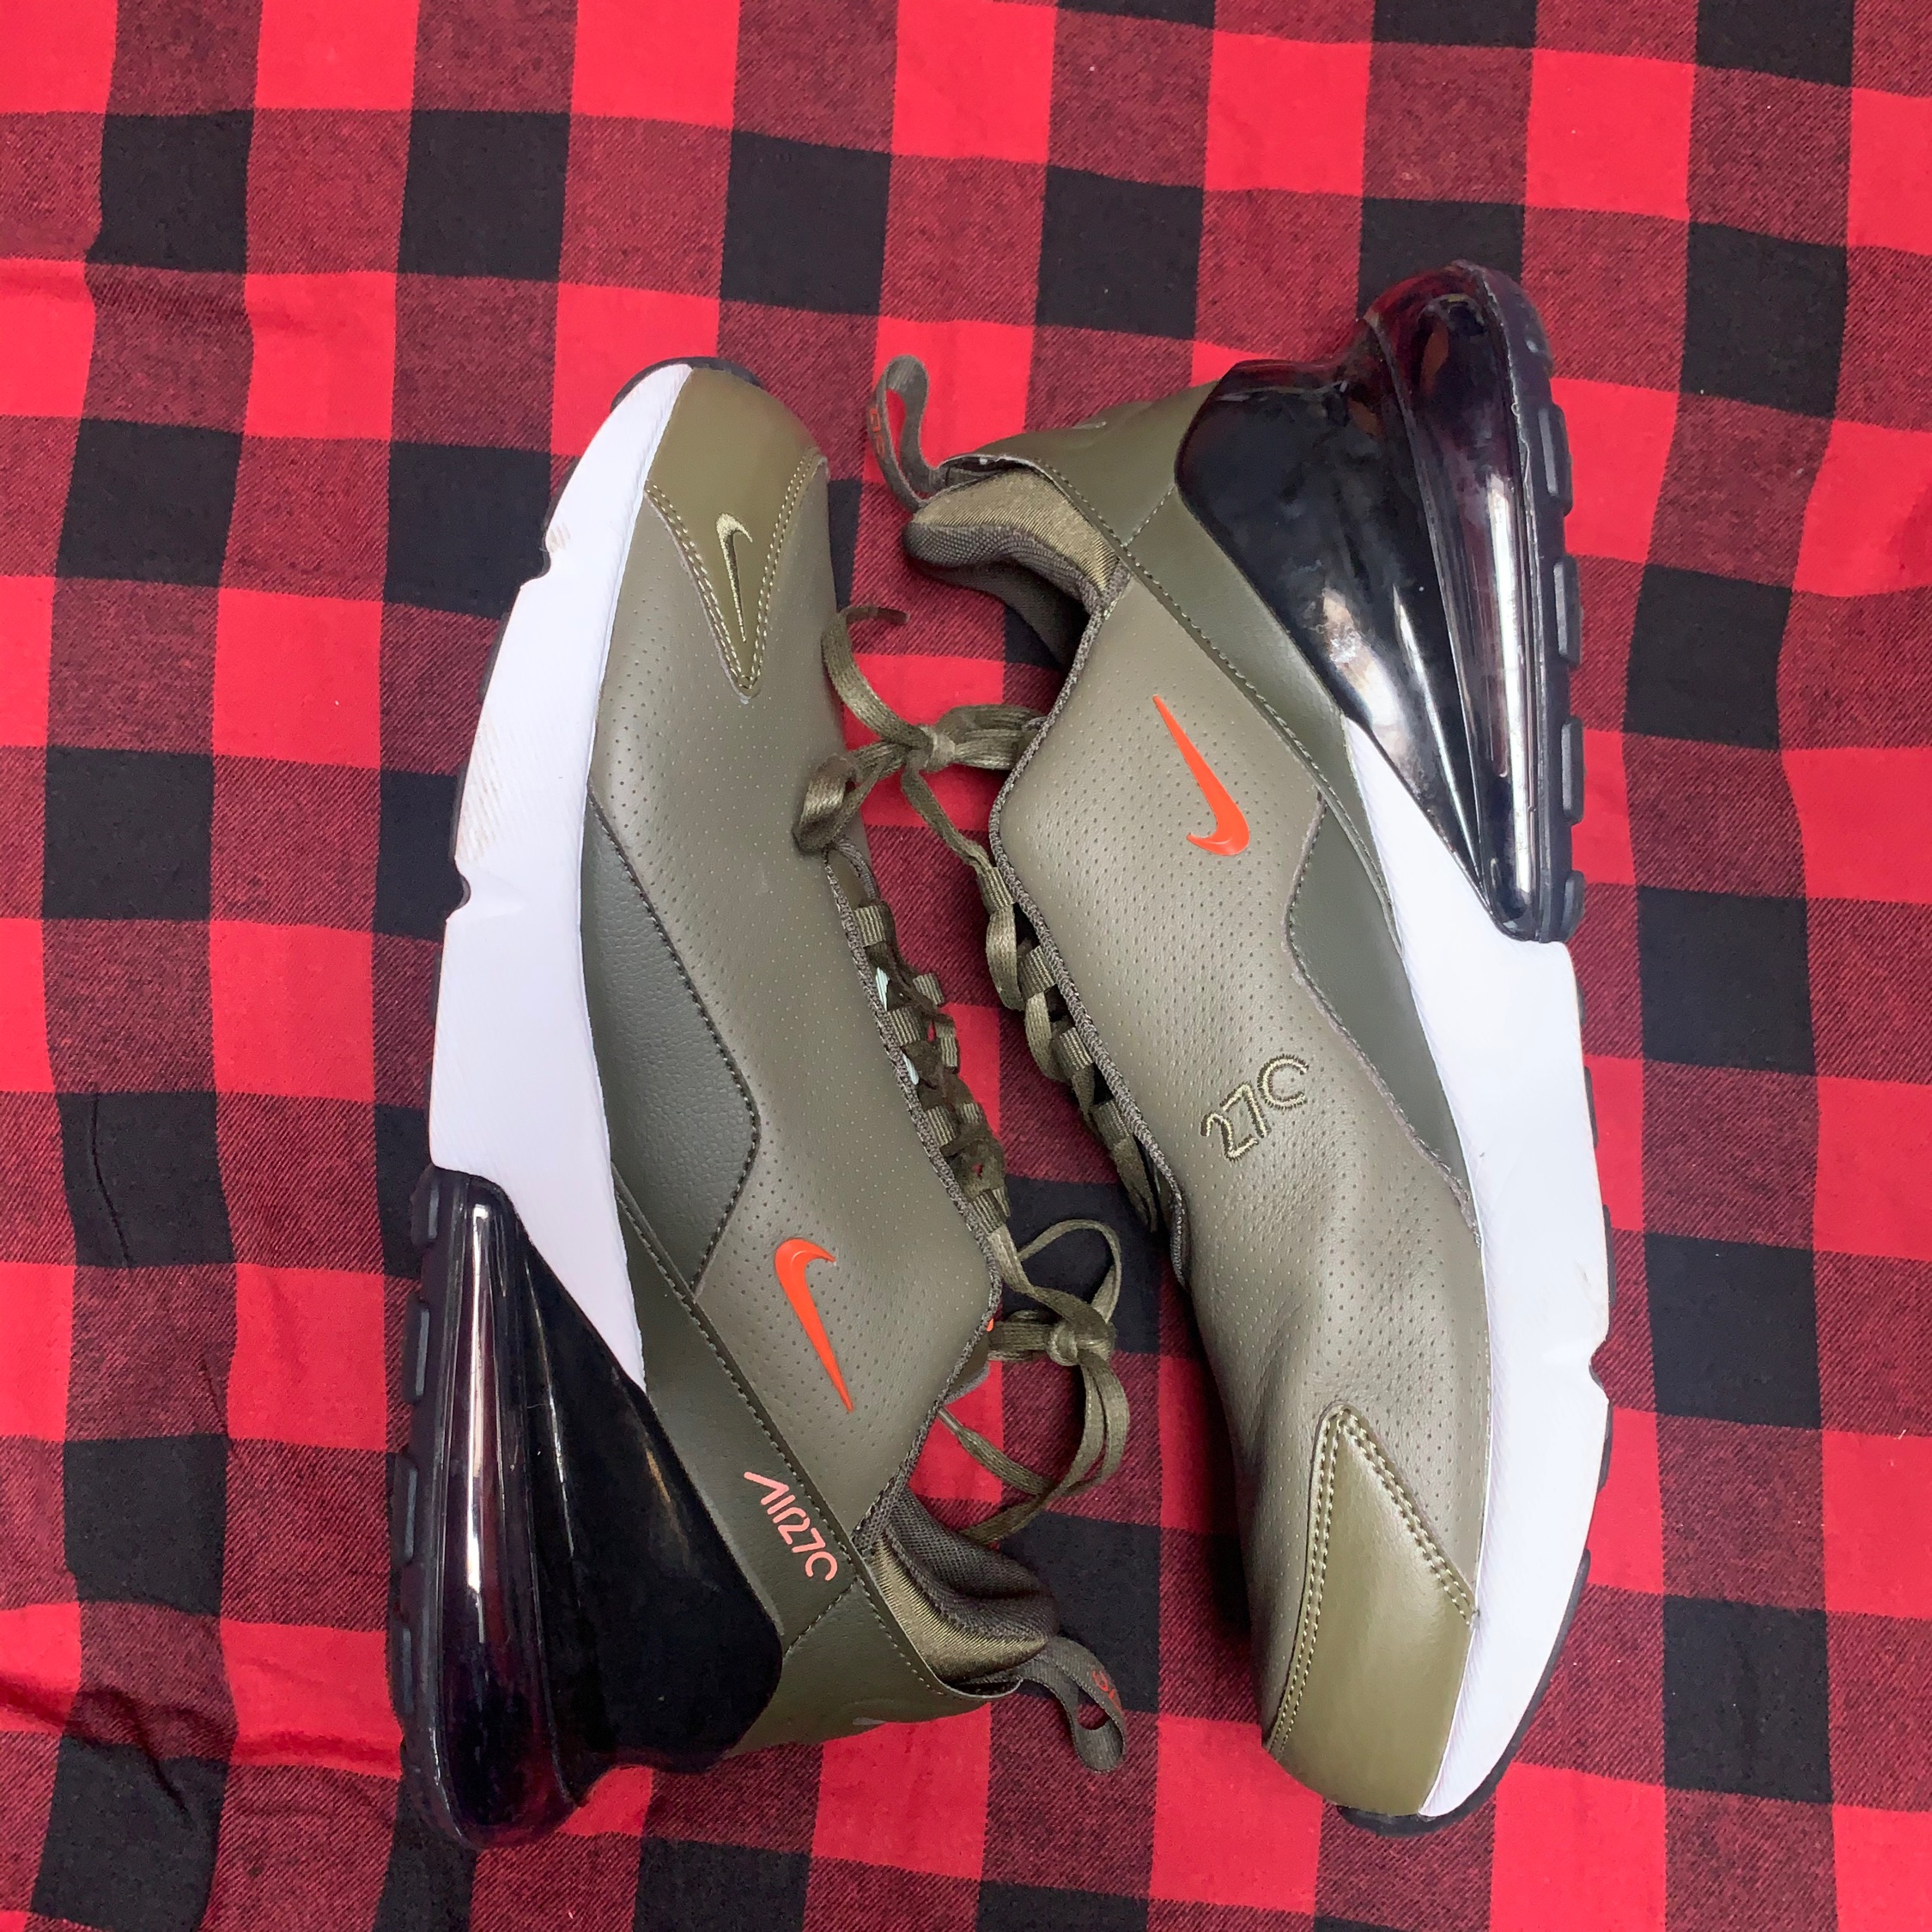 Nike Air Max 270 Olive Leather Size 12.5